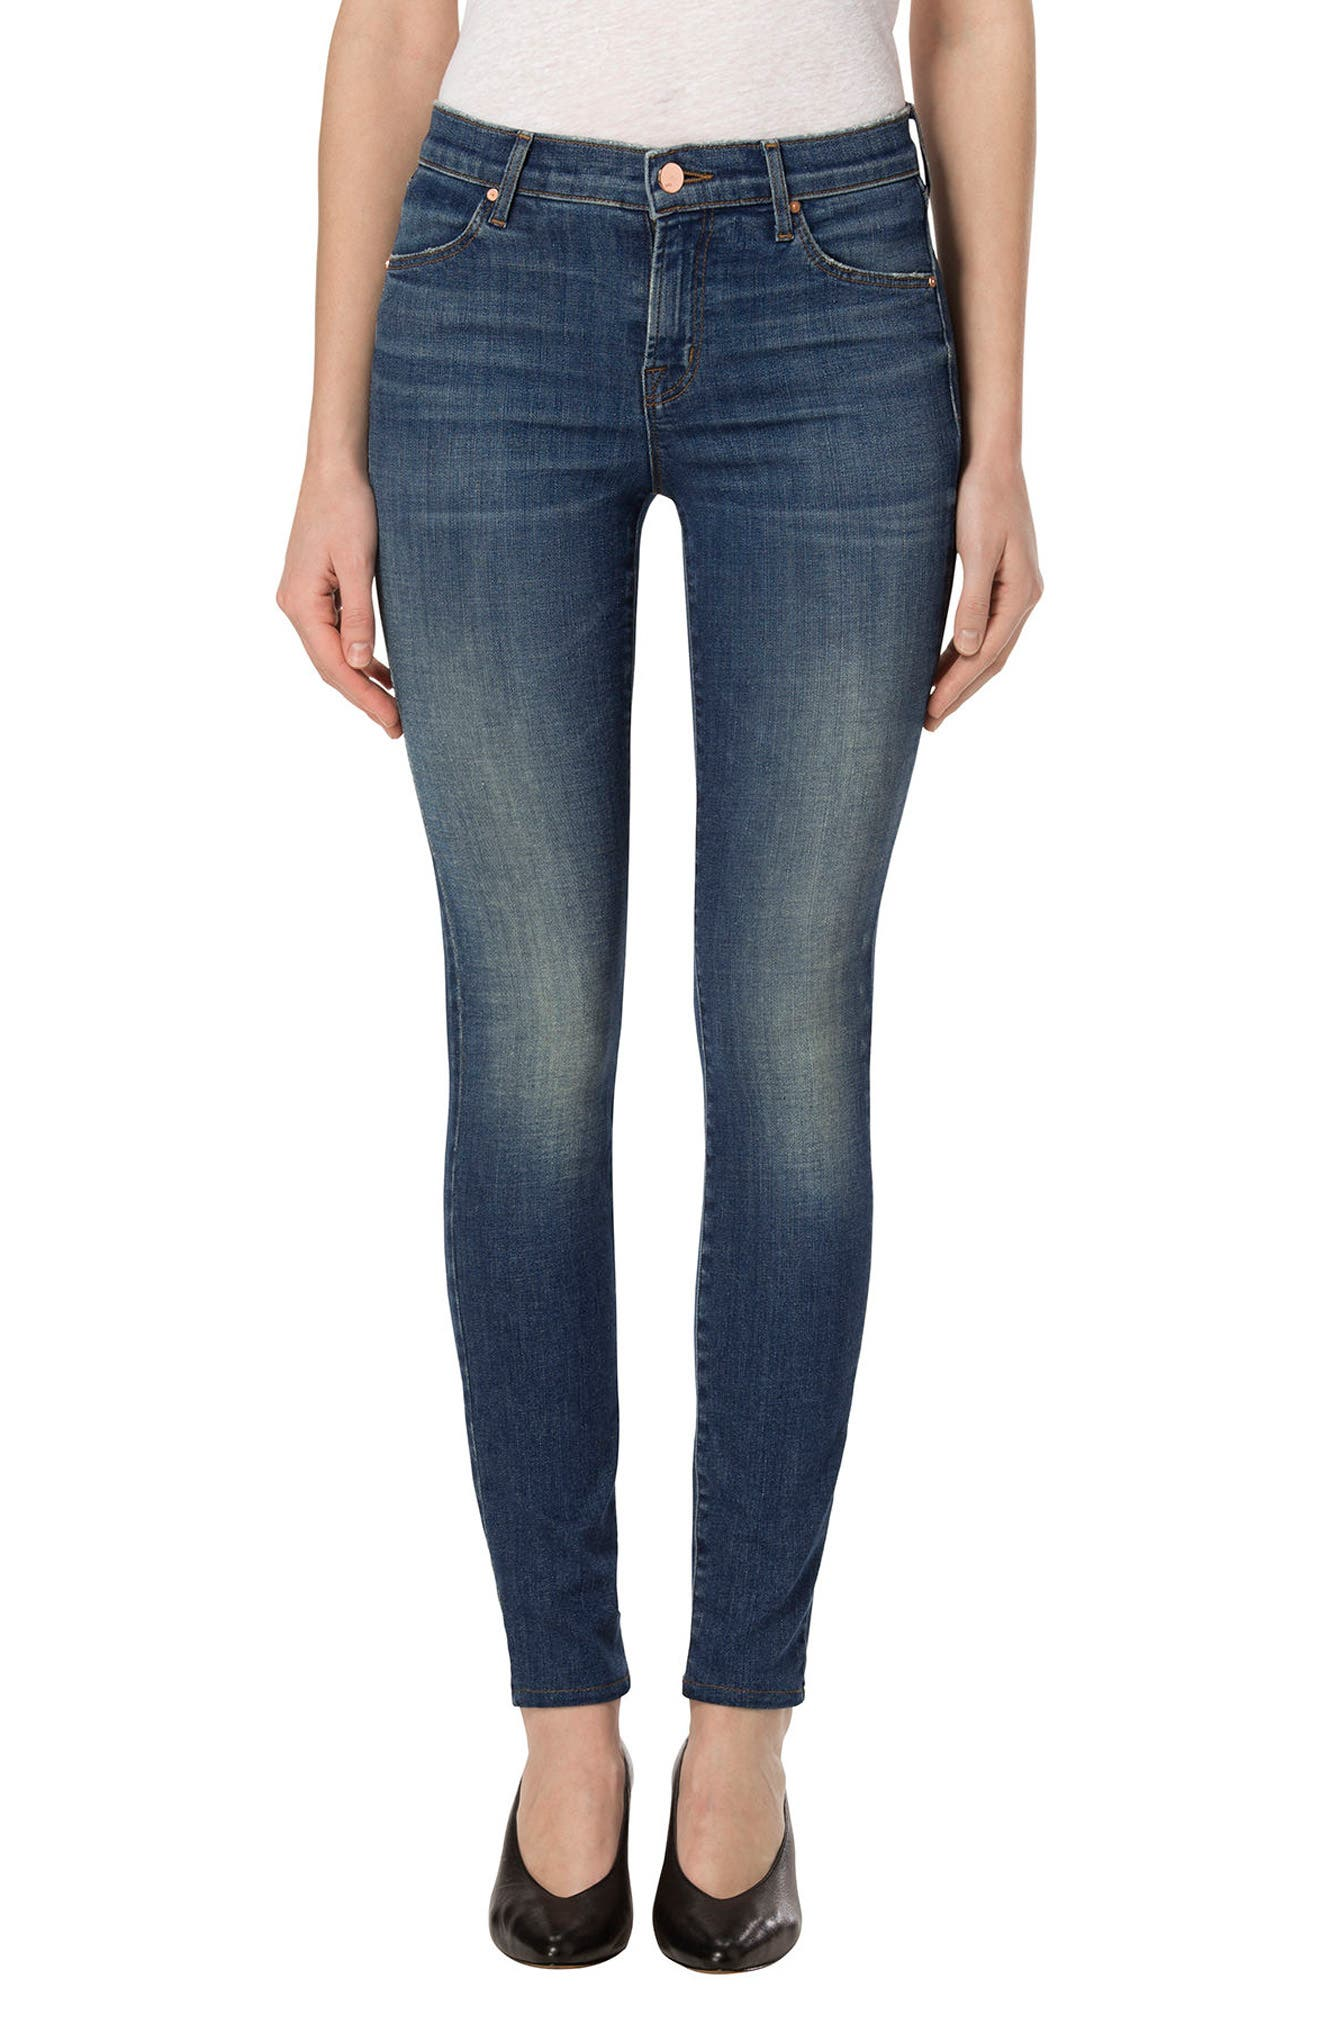 J BRAND,                             'Maria' High Rise Skinny Jeans,                             Main thumbnail 1, color,                             425